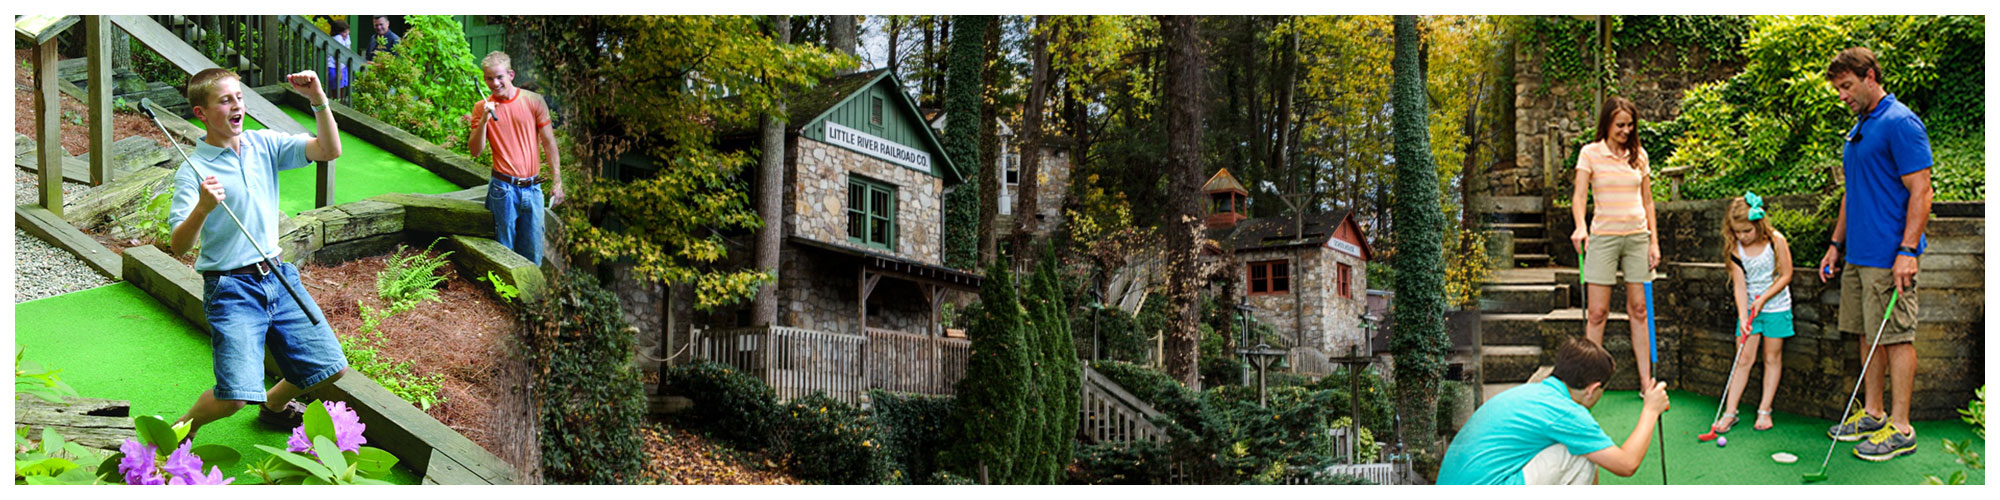 Gatlin's Mini Golf (Header Background) | Gatlinburg Attractions